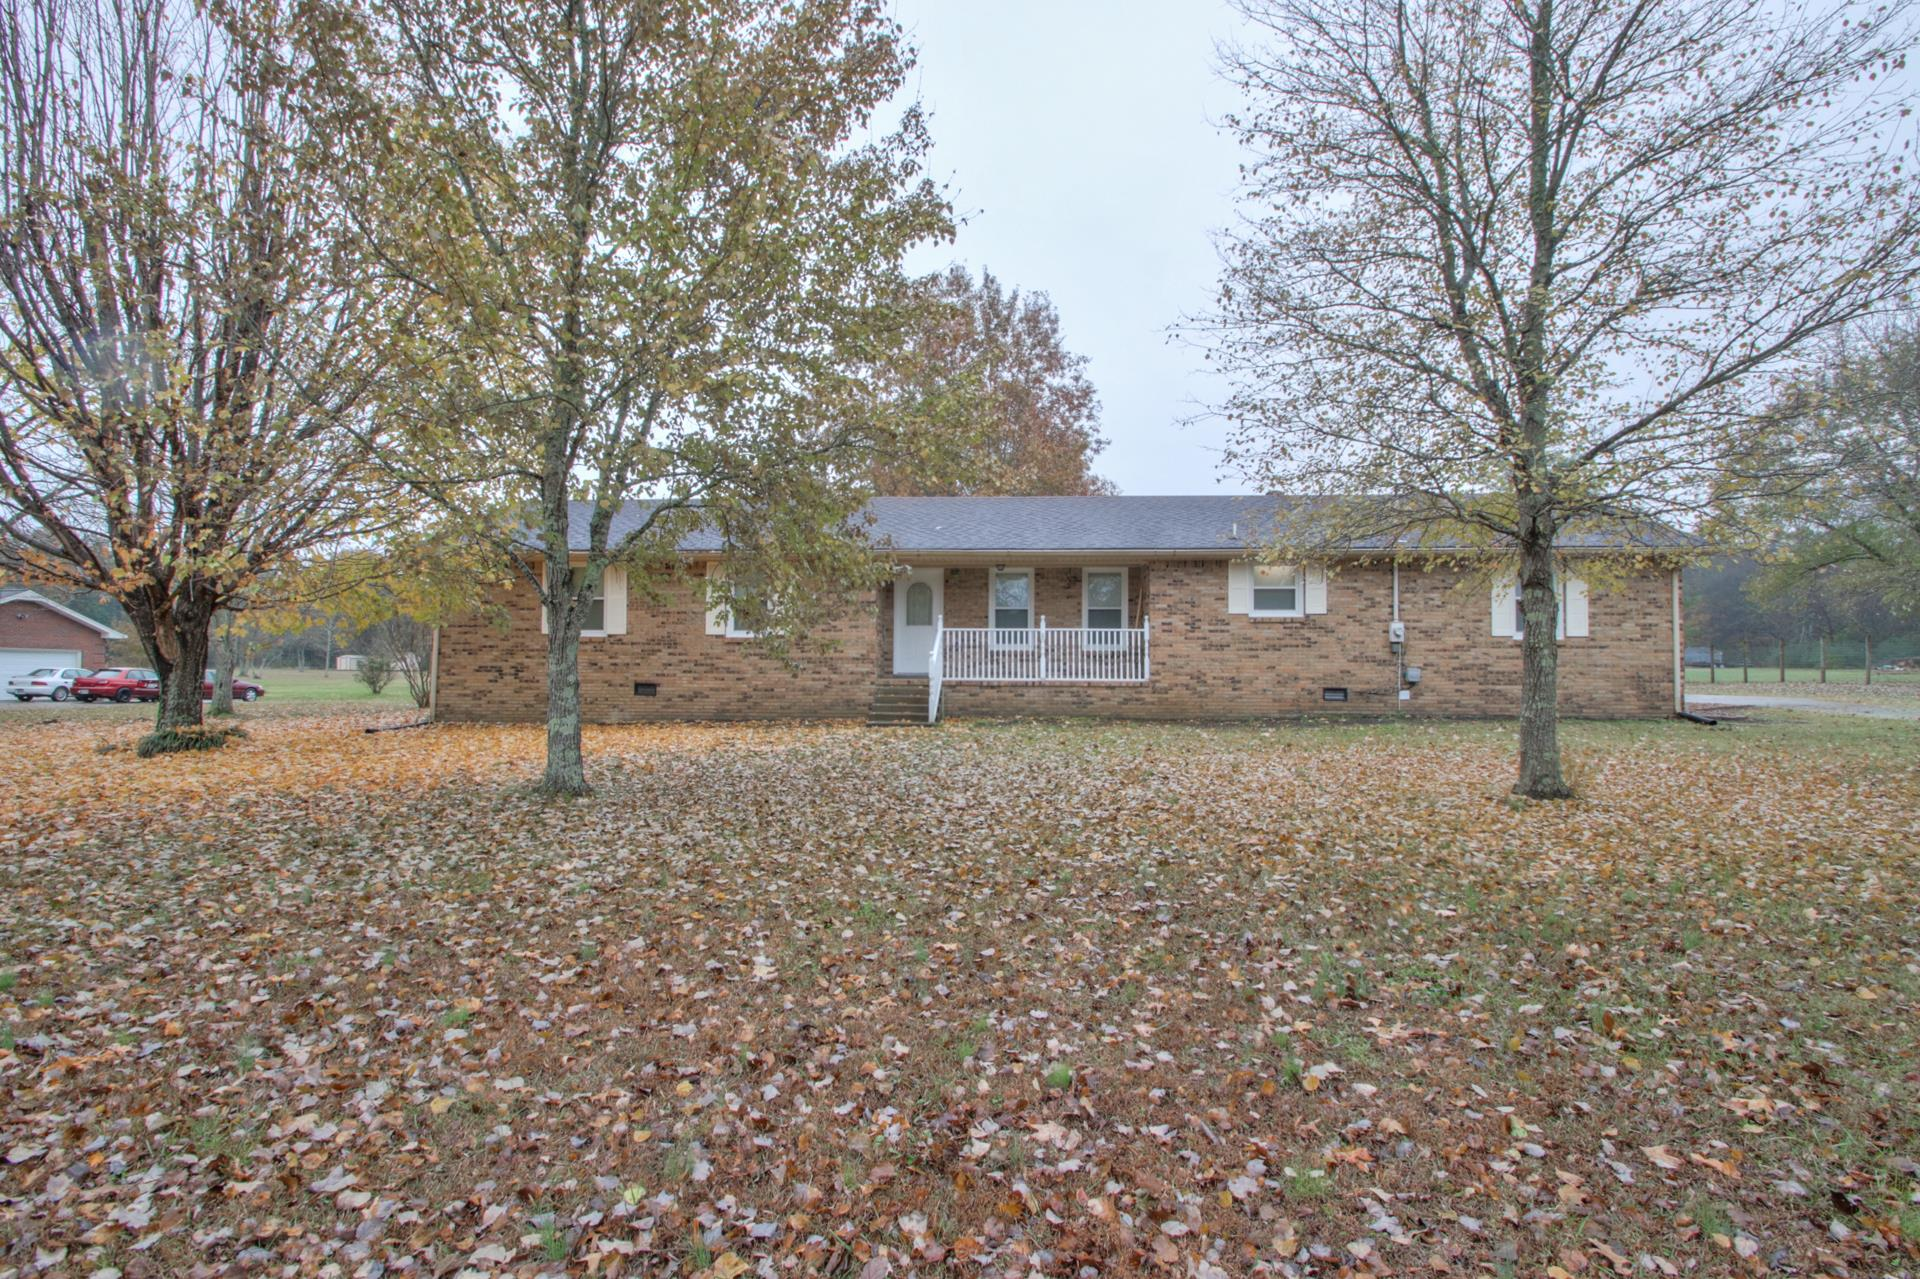 1060 Trousdale Ferry Pike, Lebanon in Wilson County County, TN 37087 Home for Sale